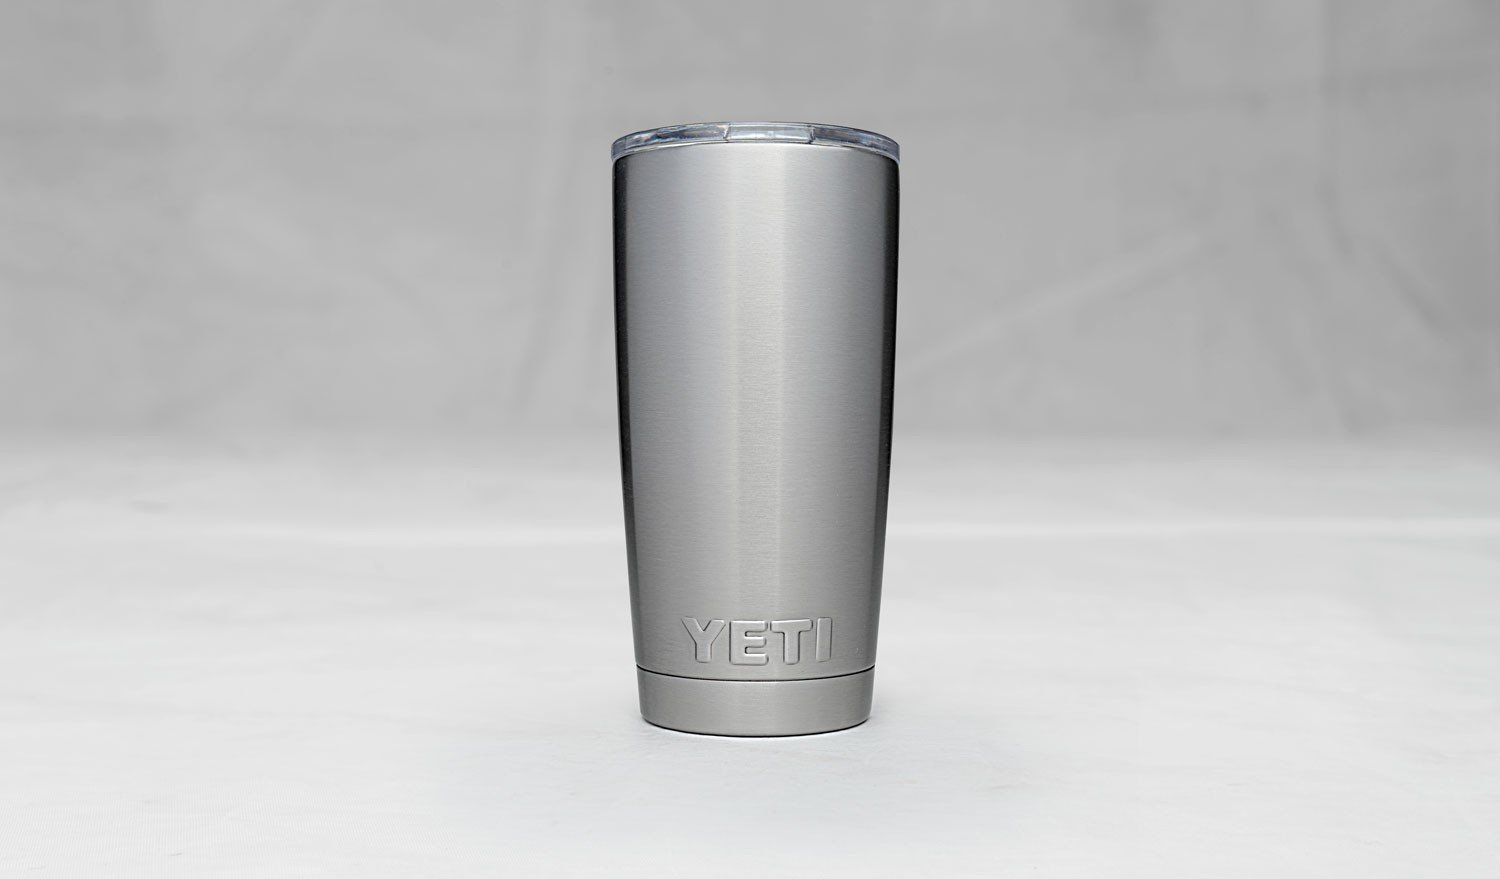 5c2414a767e Buy YETI Rambler 20 oz Stainless Steel Vacuum Insulated Tumbler with Lid  Online at Low Prices in India - Amazon.in